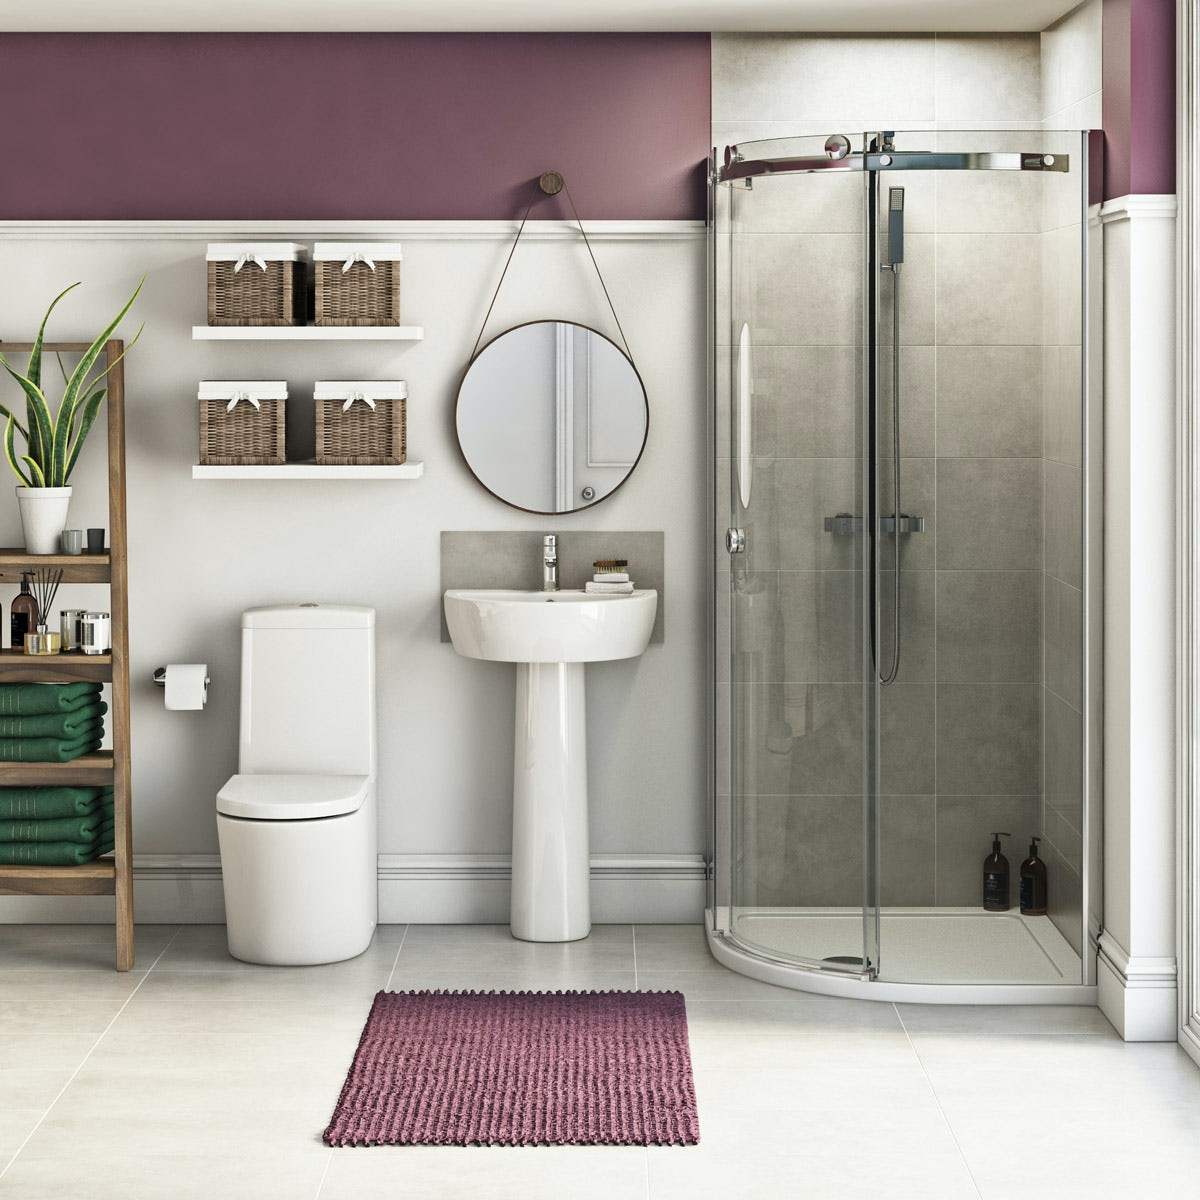 Bathroom suites with shower enclosures - Free Delivery Mode Tate Suite With 8mm Infiniti Quadrant Shower Enclosure And Tray